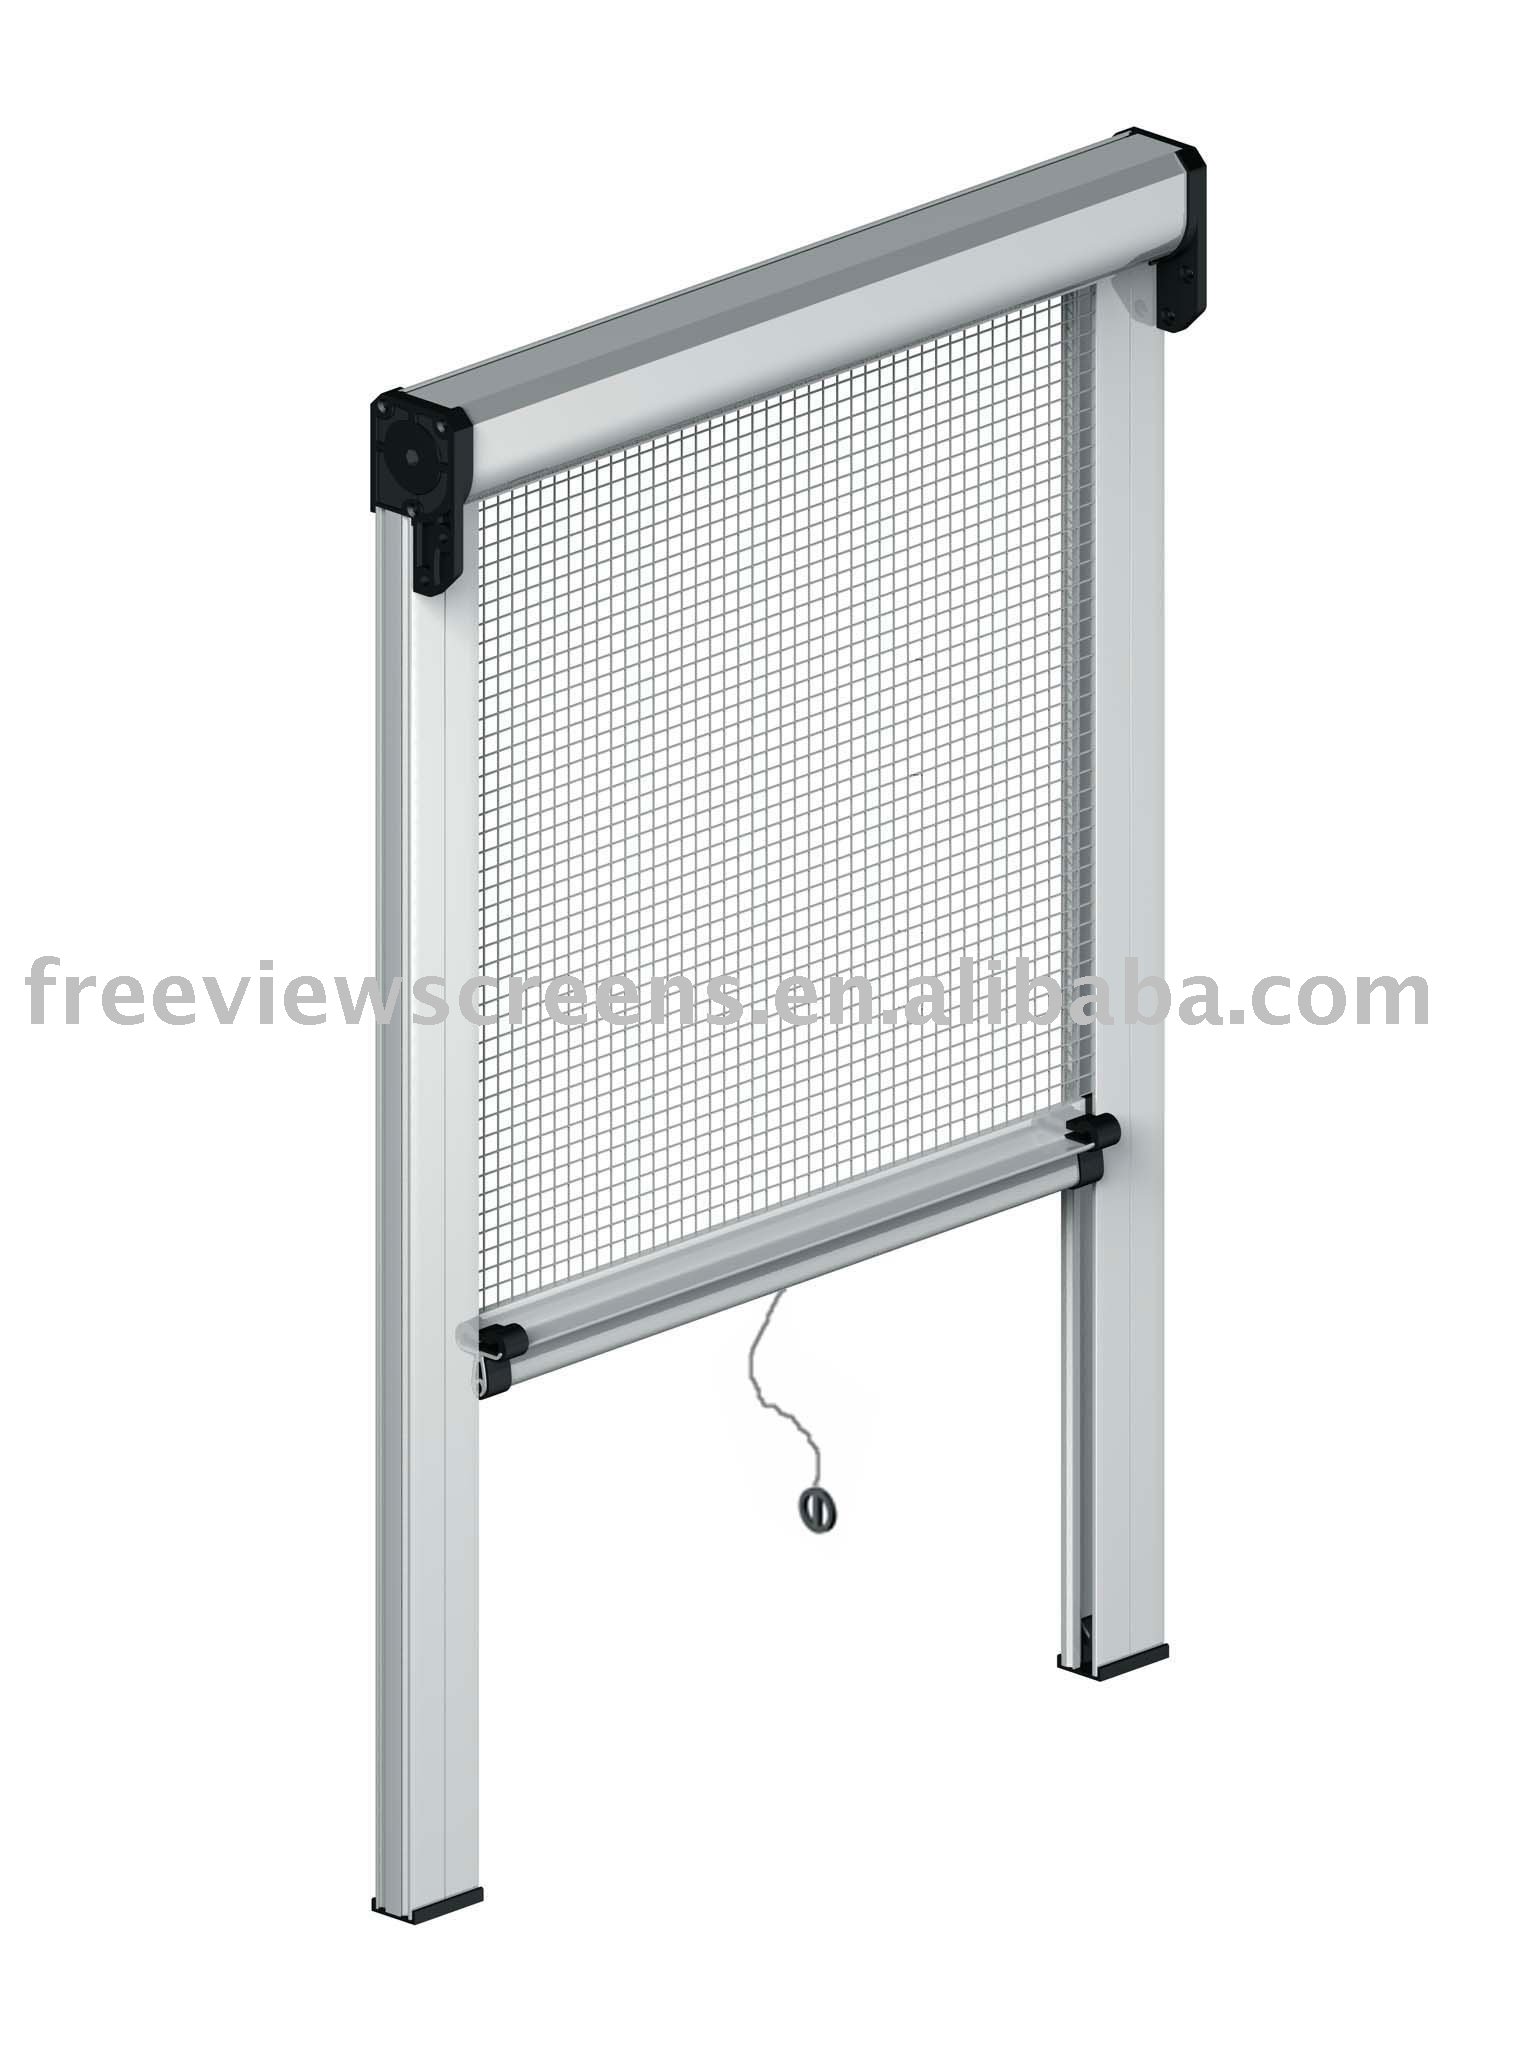 Retractable Insect Screen Window   Buy Retractable Insect Screen Window,Insect  Screen,Rolling Netting Product On Alibaba.com